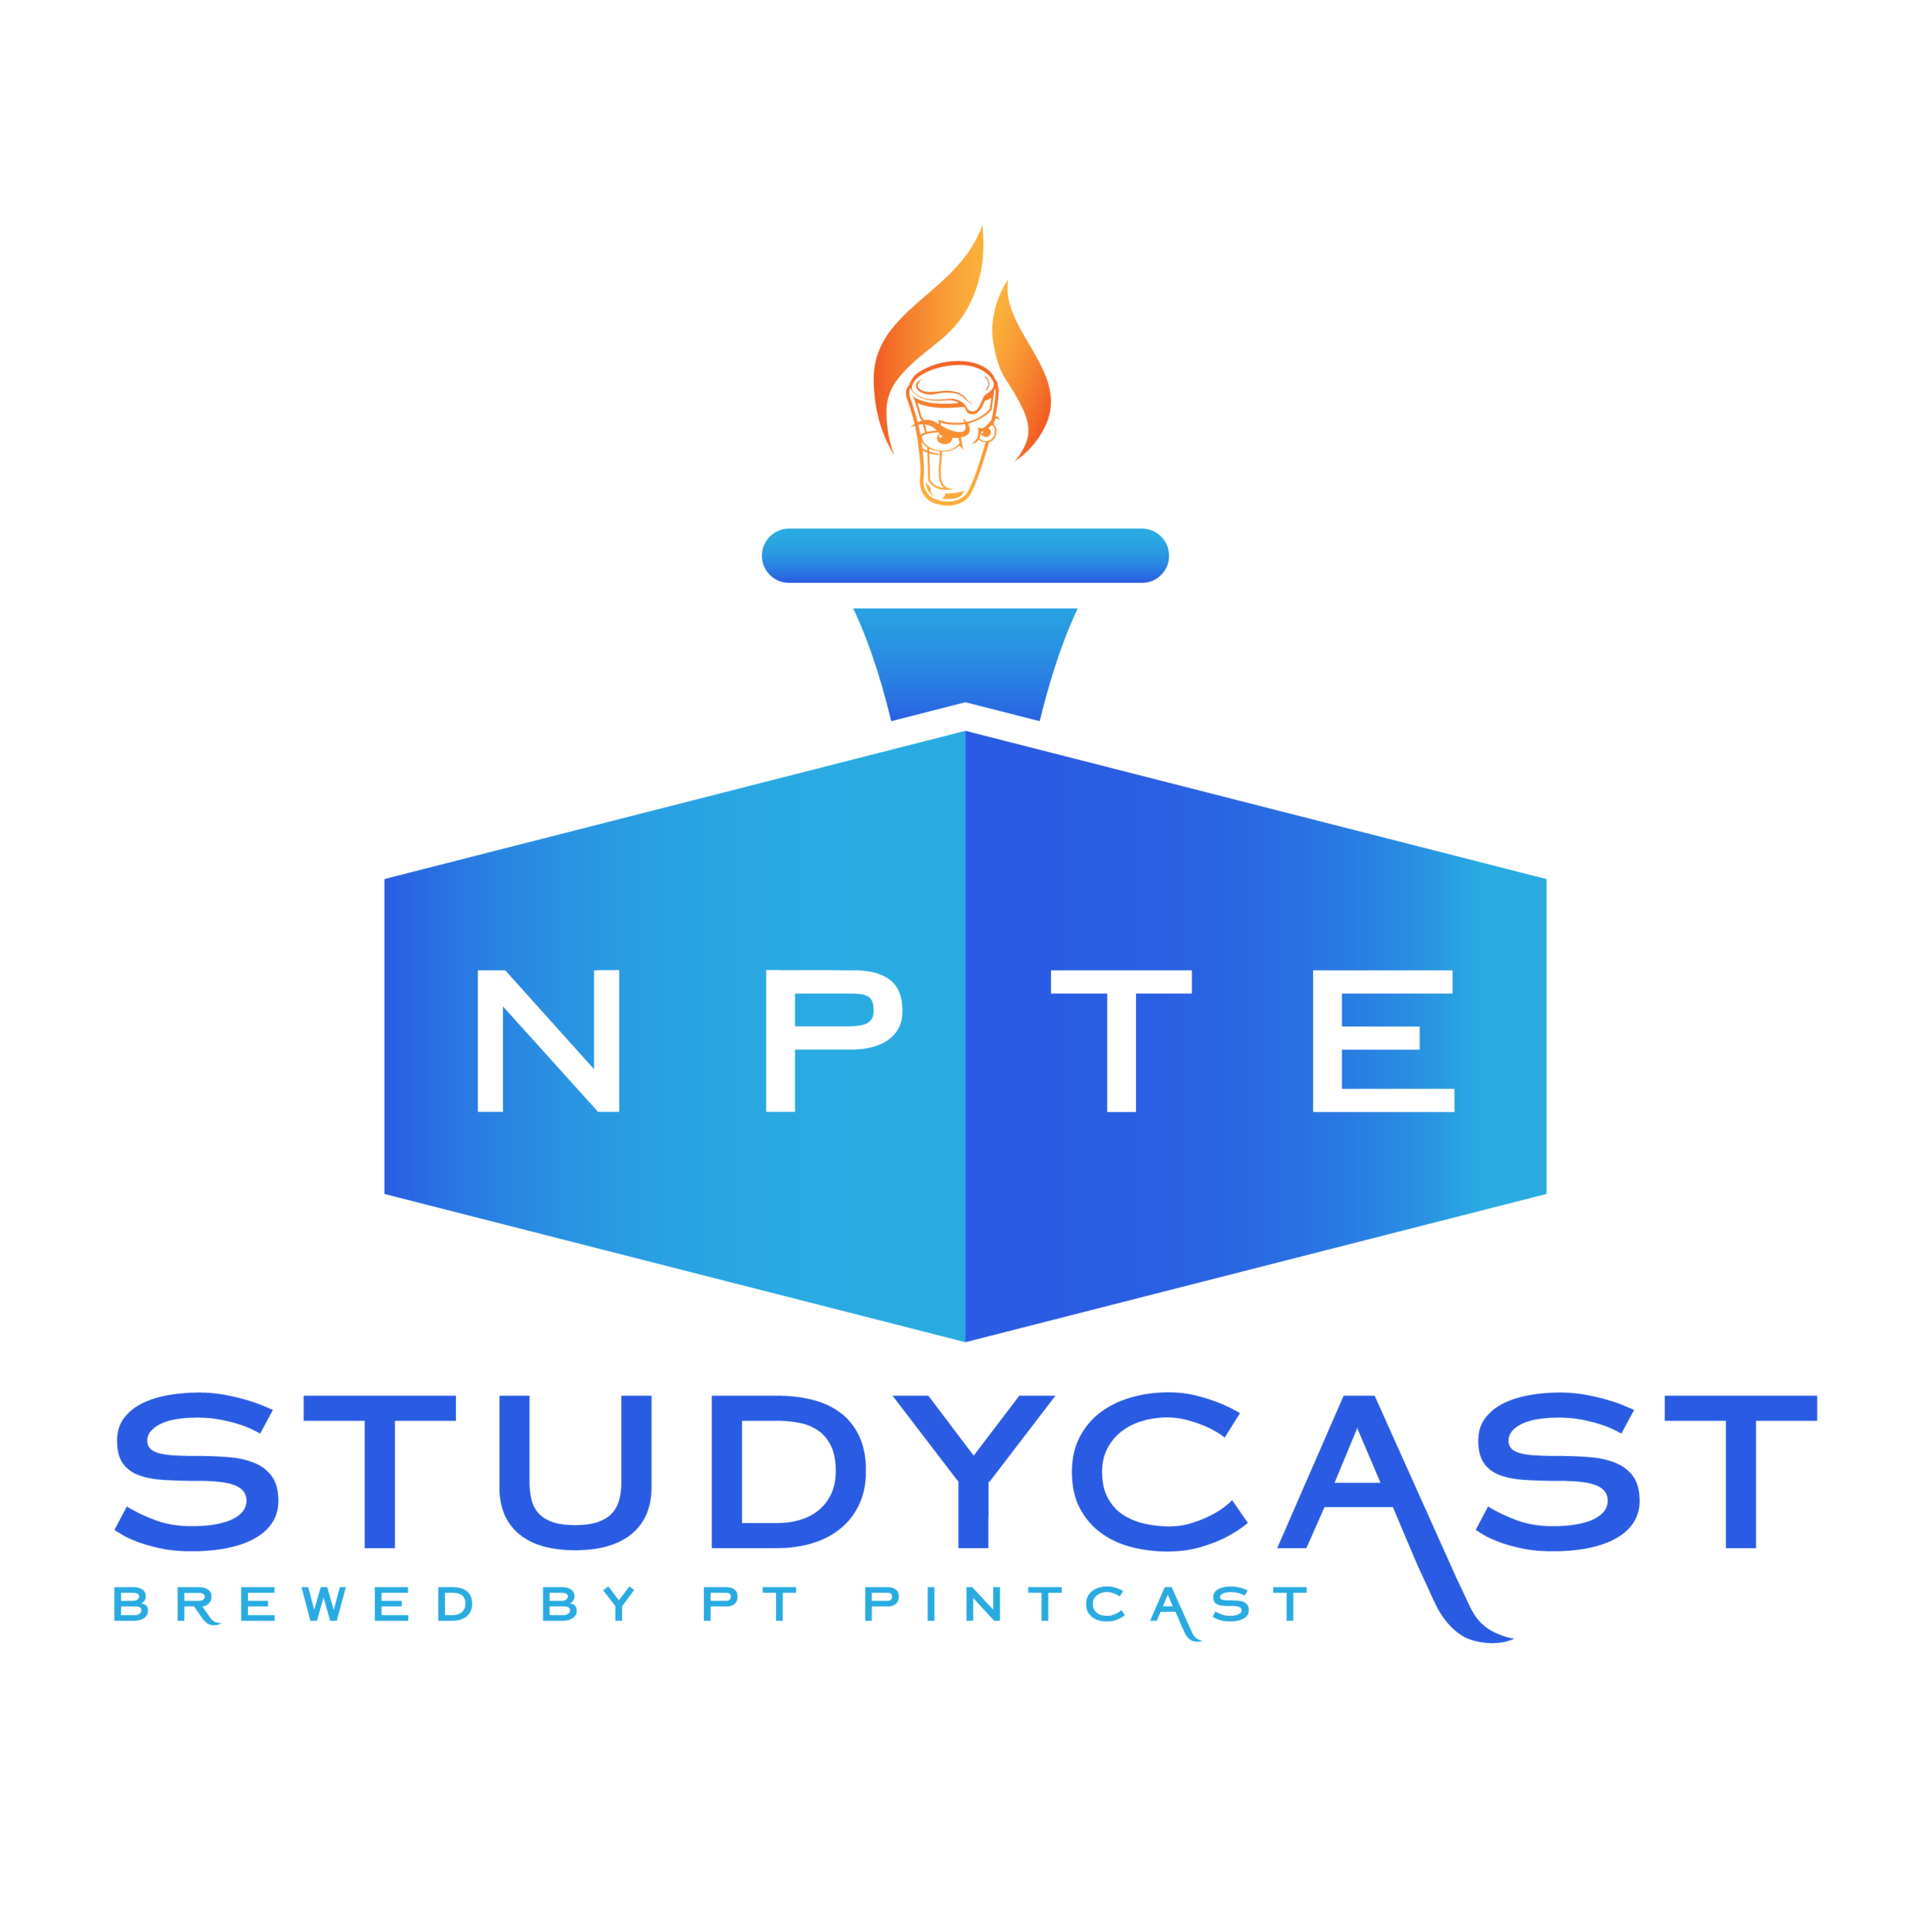 - Thanks for being part of the NPTE Studycast.Things to keep in mind:We're not aiming to teach things to PT students here we're here for a refresher. We give them the bare bones of what they'll need to pass the test.Can't thank you enough for being a part of this!!!-jimmy